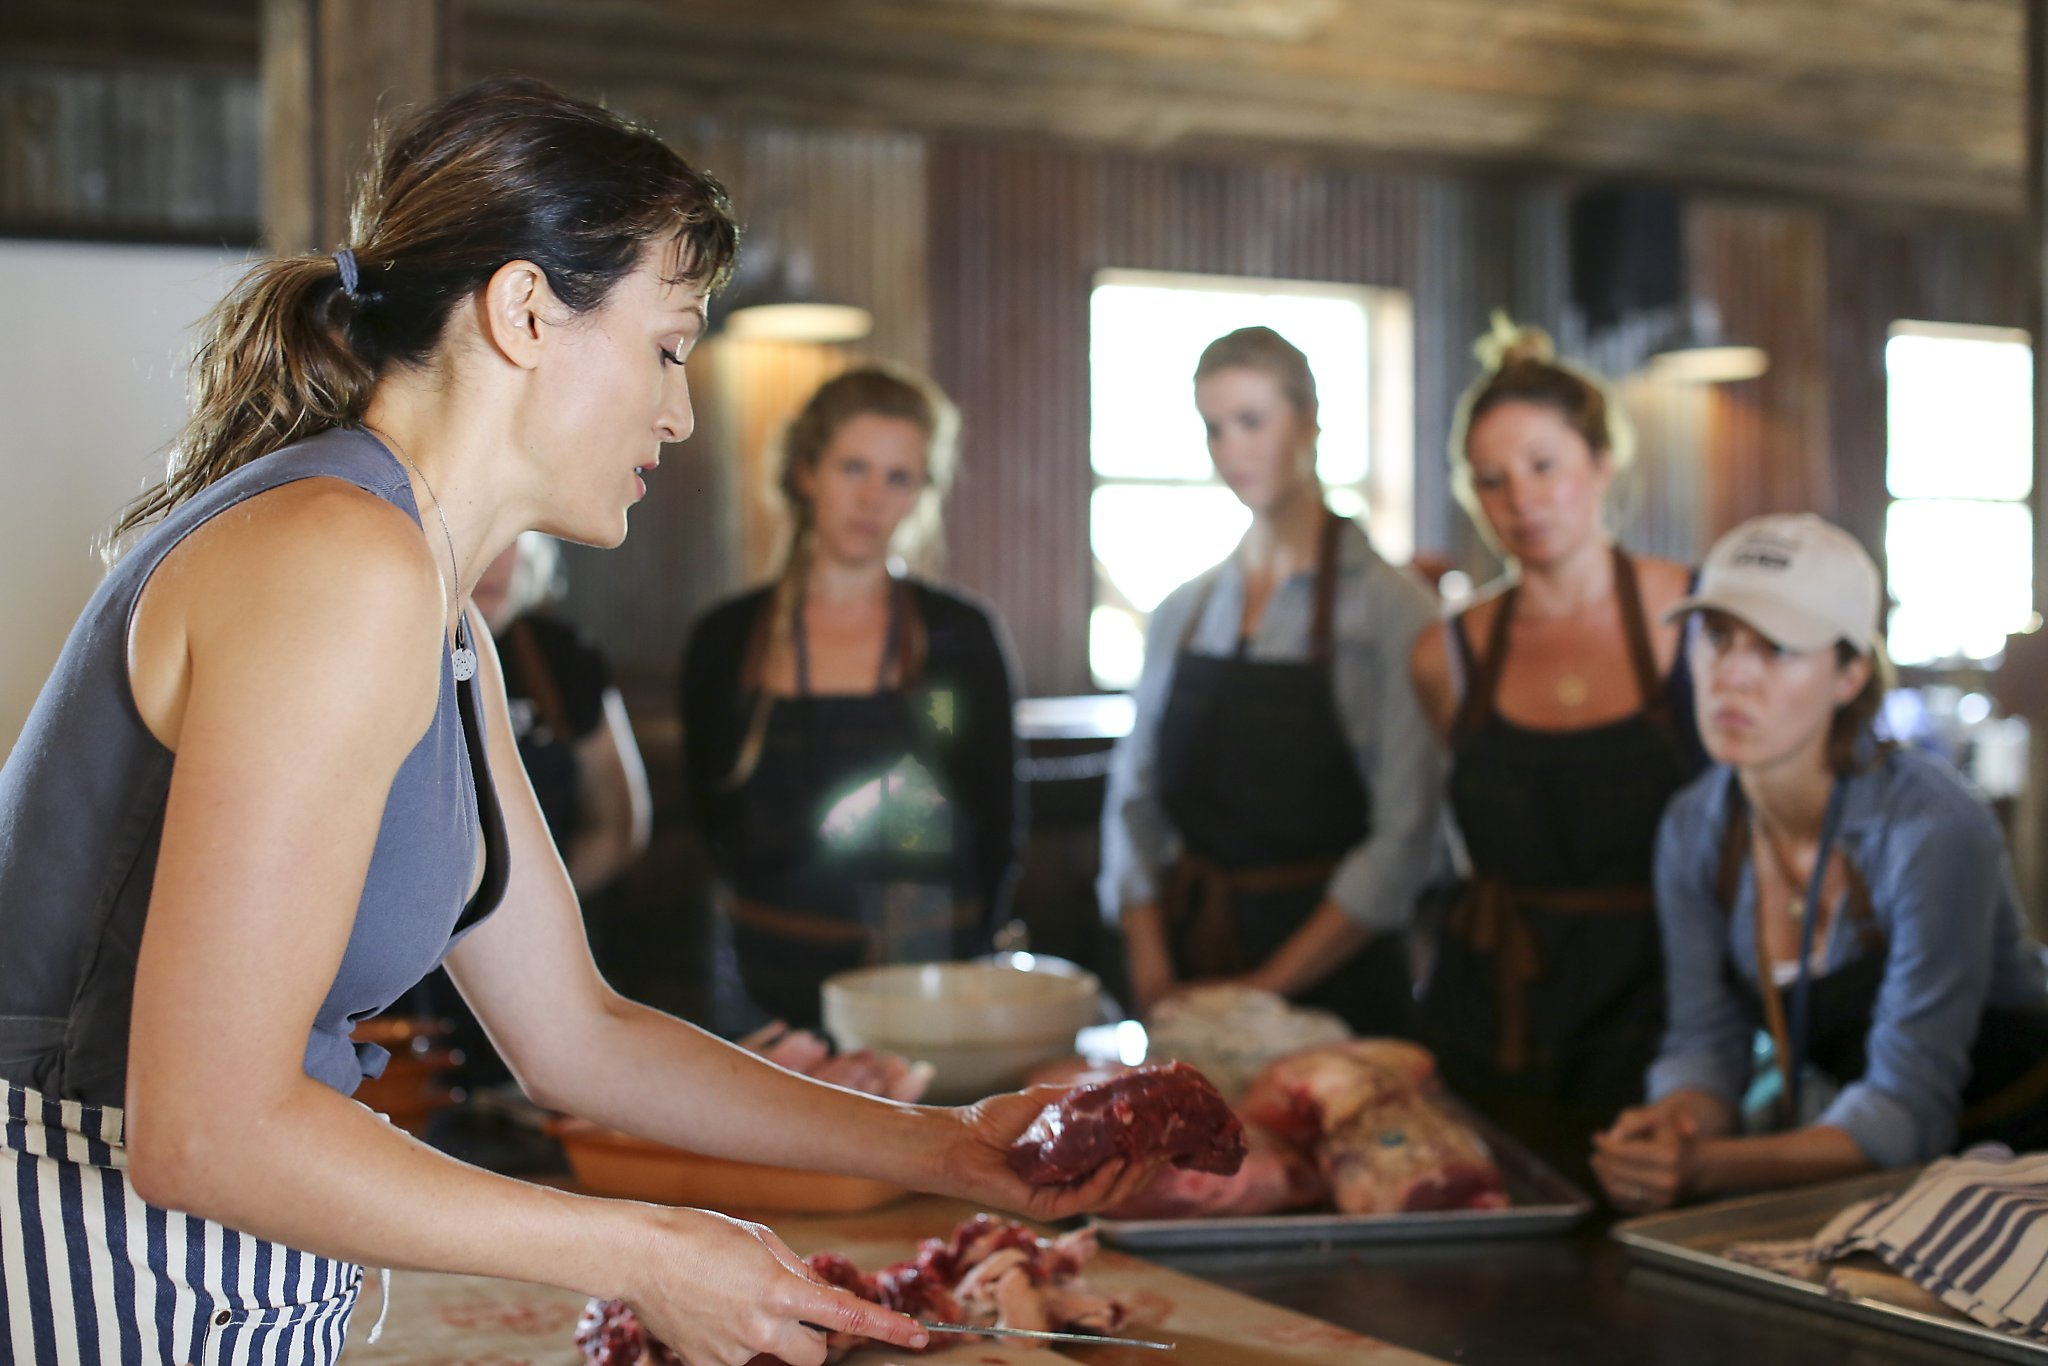 Meat Camp: Grilling, butchering and female bonding